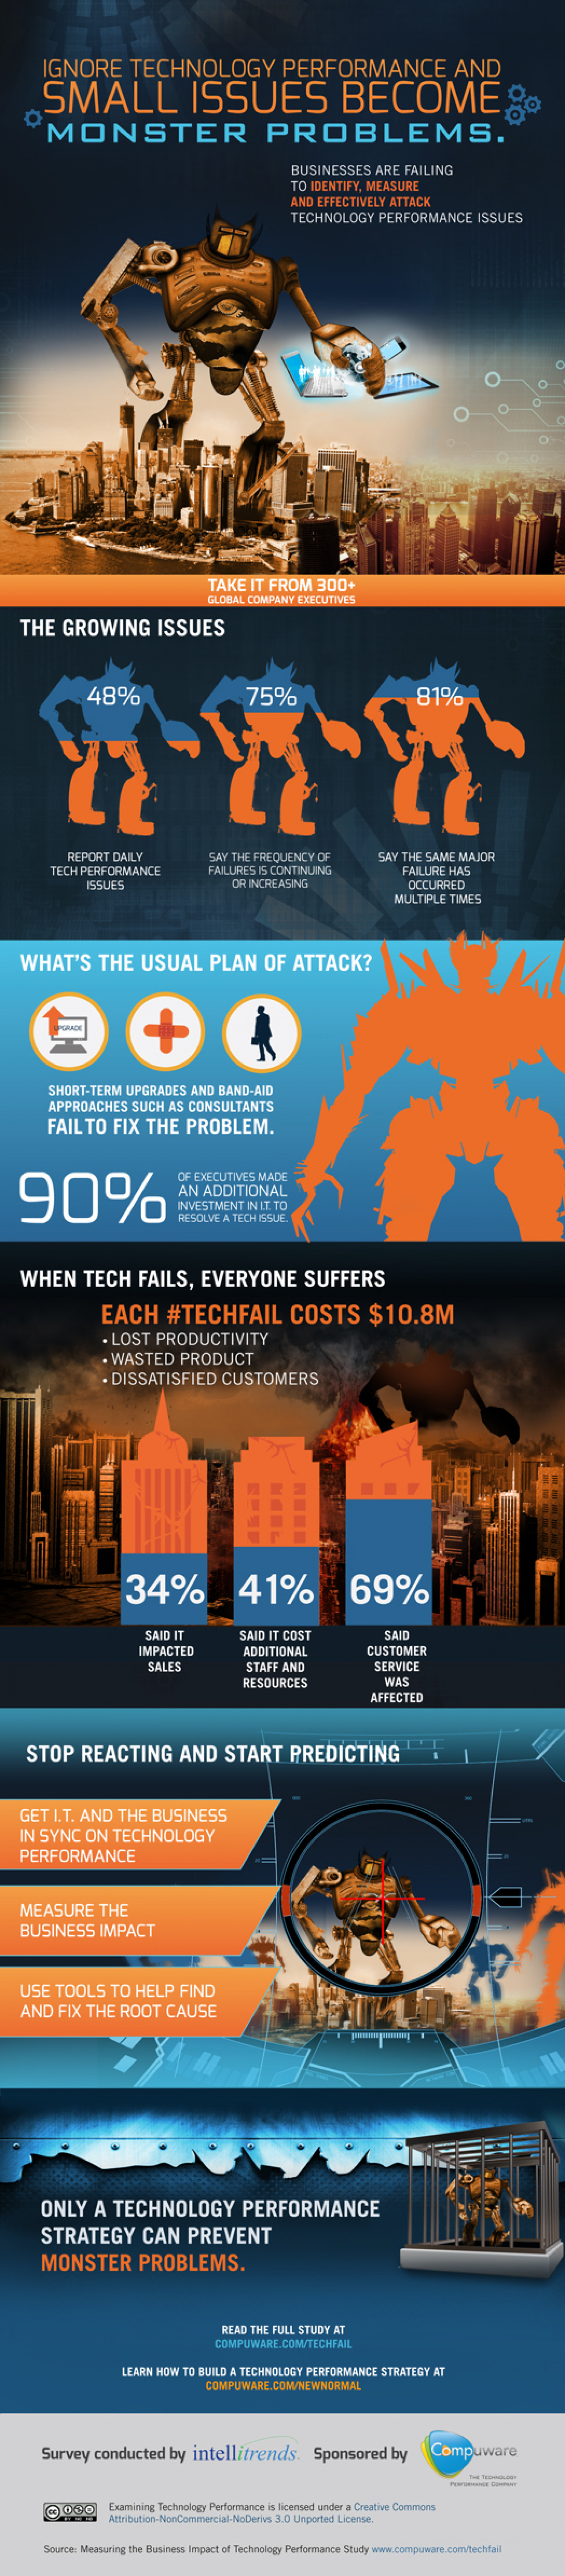 Ignore Technology Performance and Small Issues Become Monster Problems Infographic